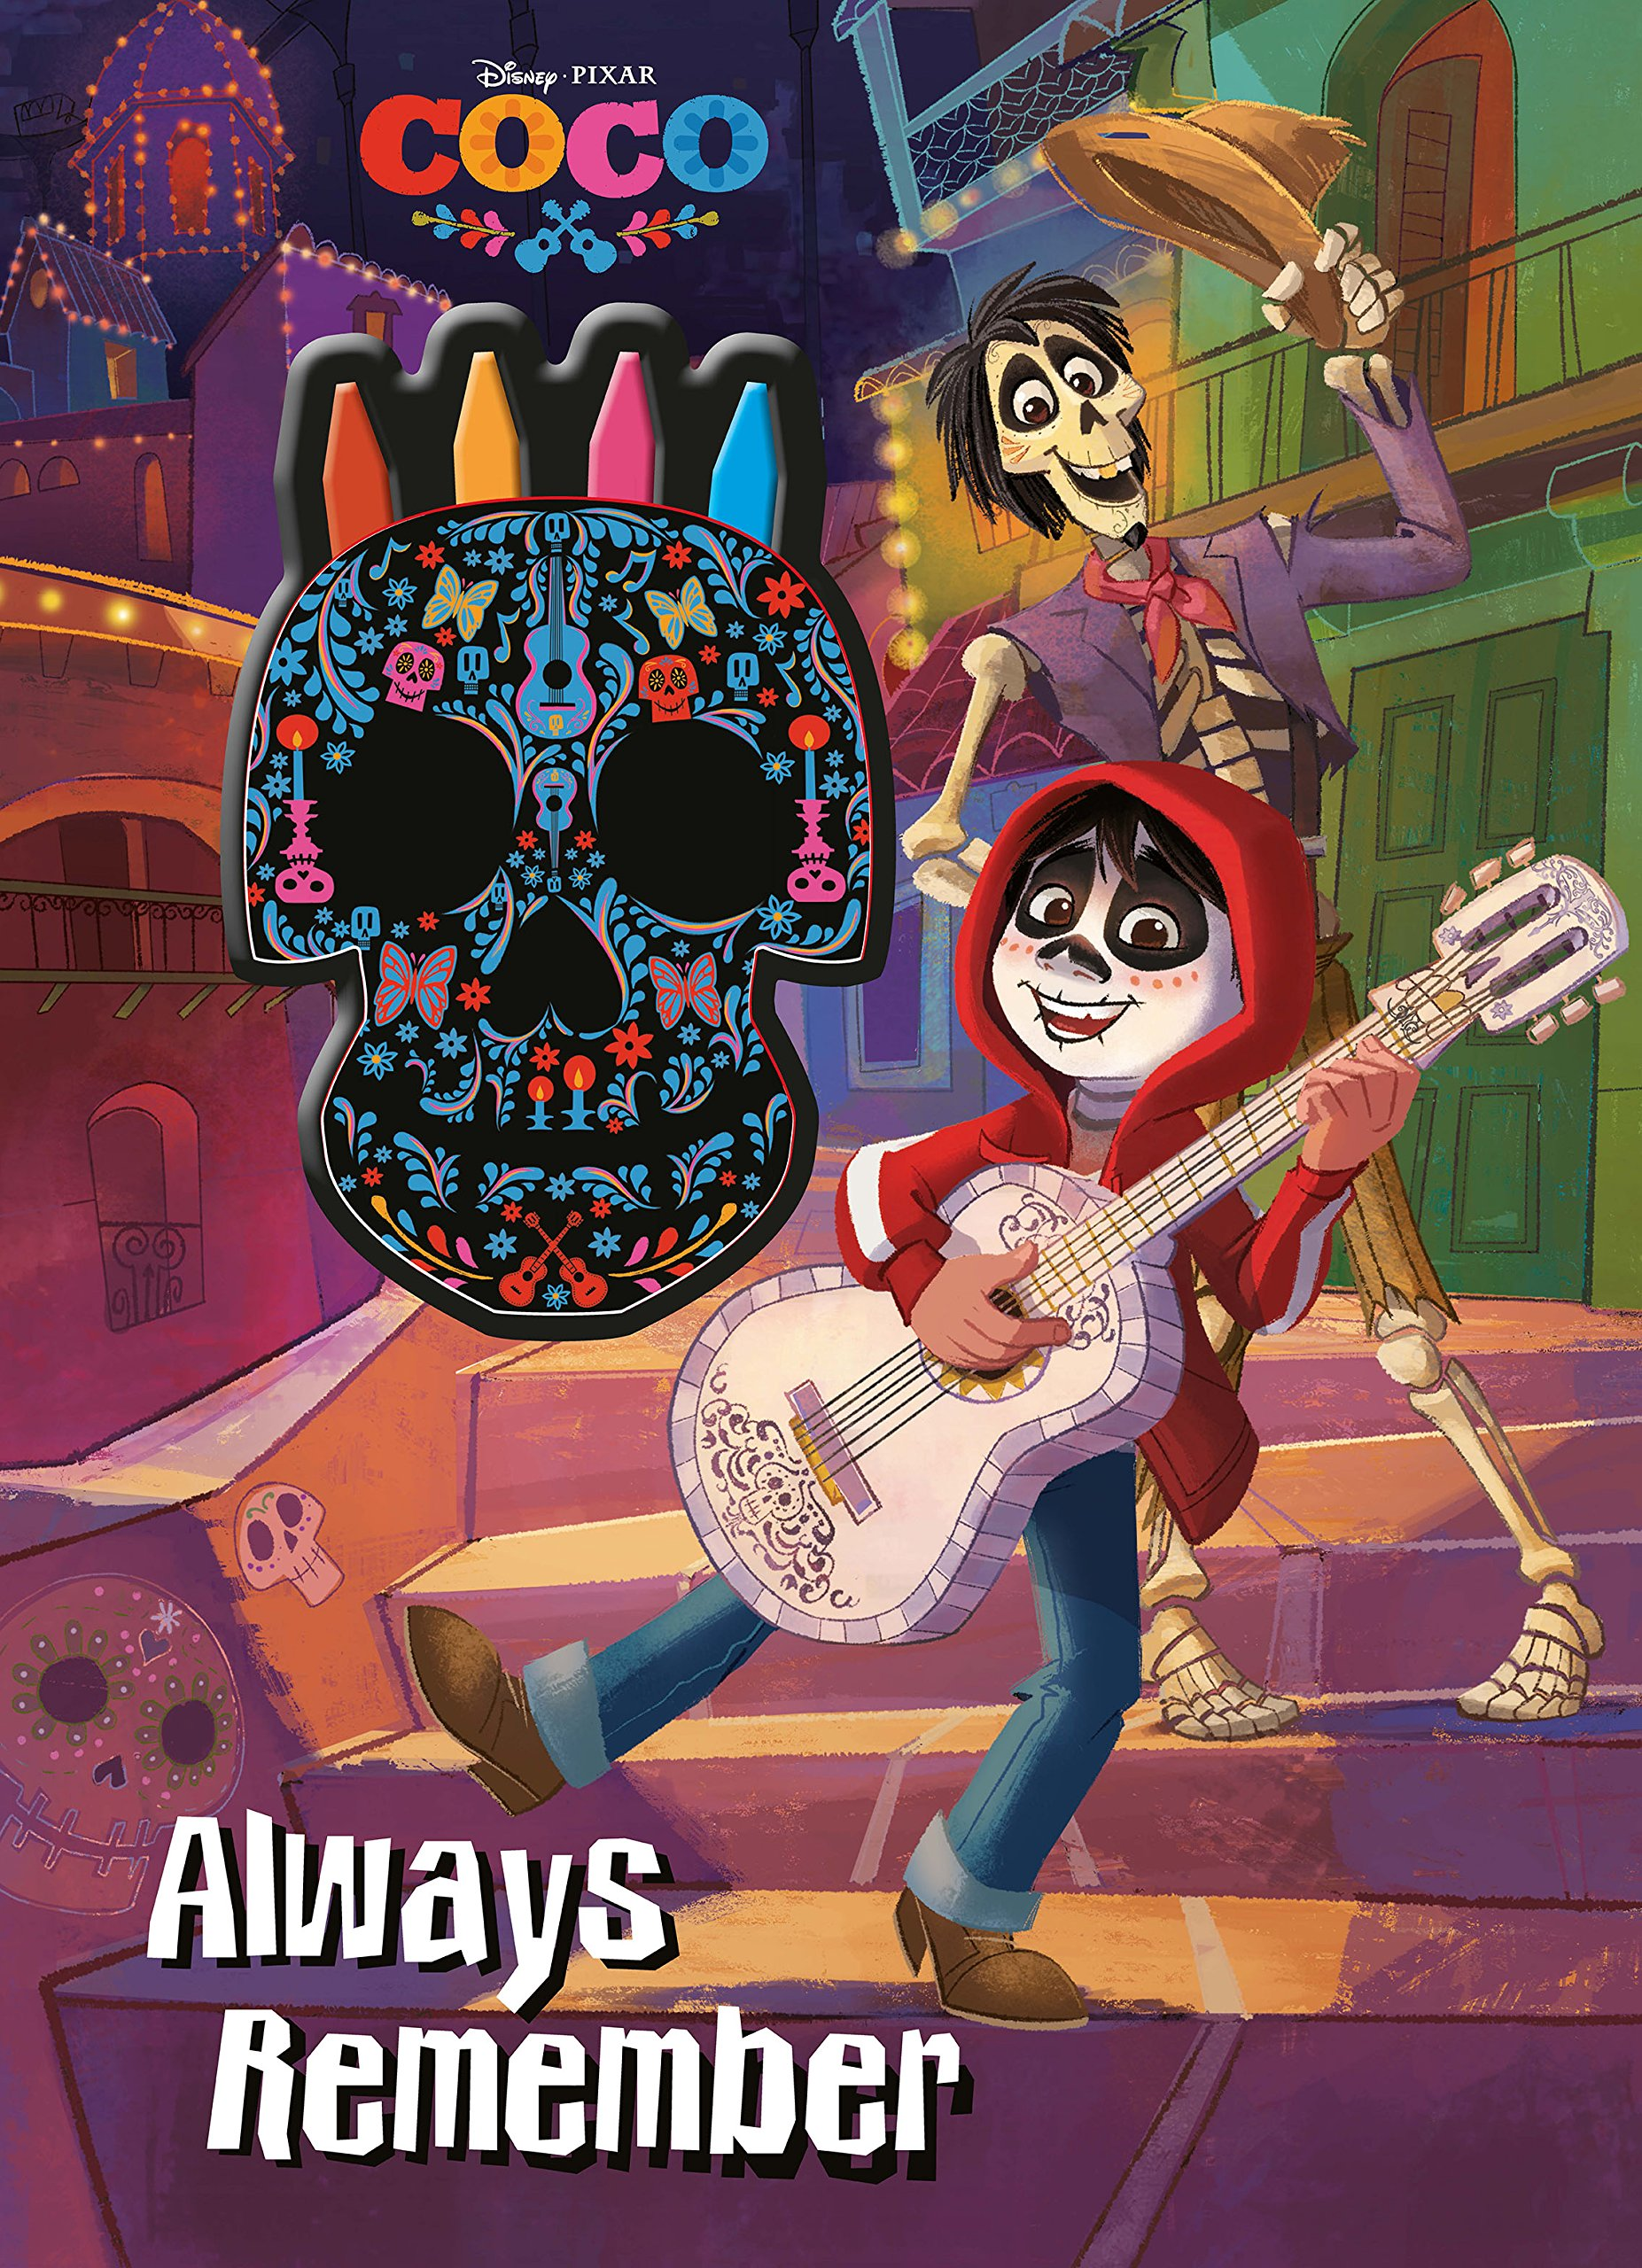 Critique du livre Disney Pixar COCO Always Remember de Parragon